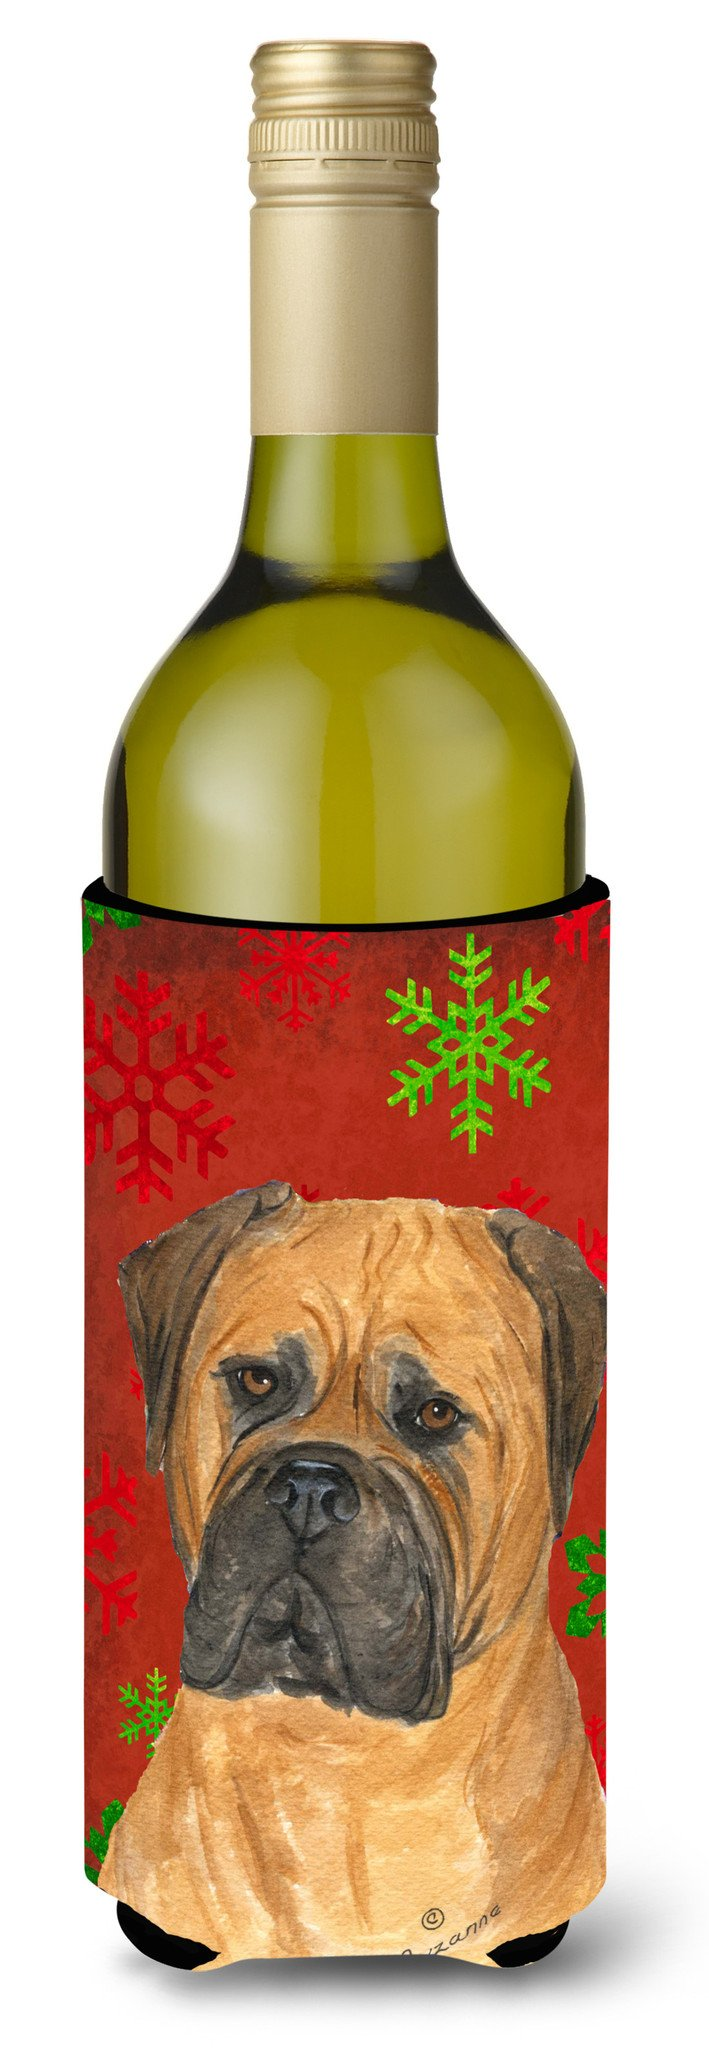 Bullmastiff Red and Green Snowflakes Holiday Christmas Wine Bottle Beverage Insulator by Caroline's Treasures